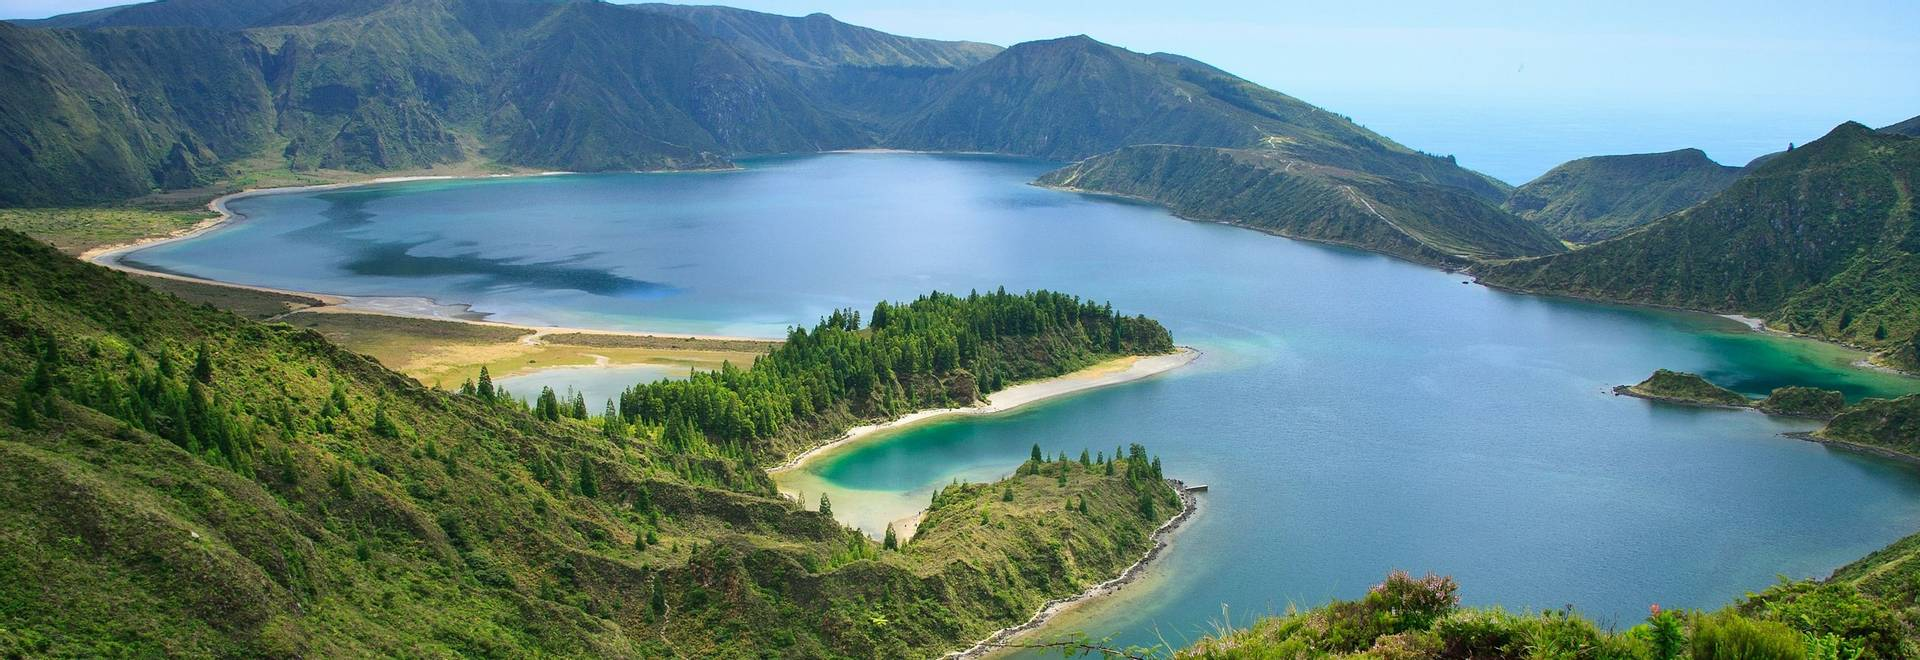 Shutterstock 92407054 Lagoa Do Fogo, A Volcanic Lake In Sao Miguel